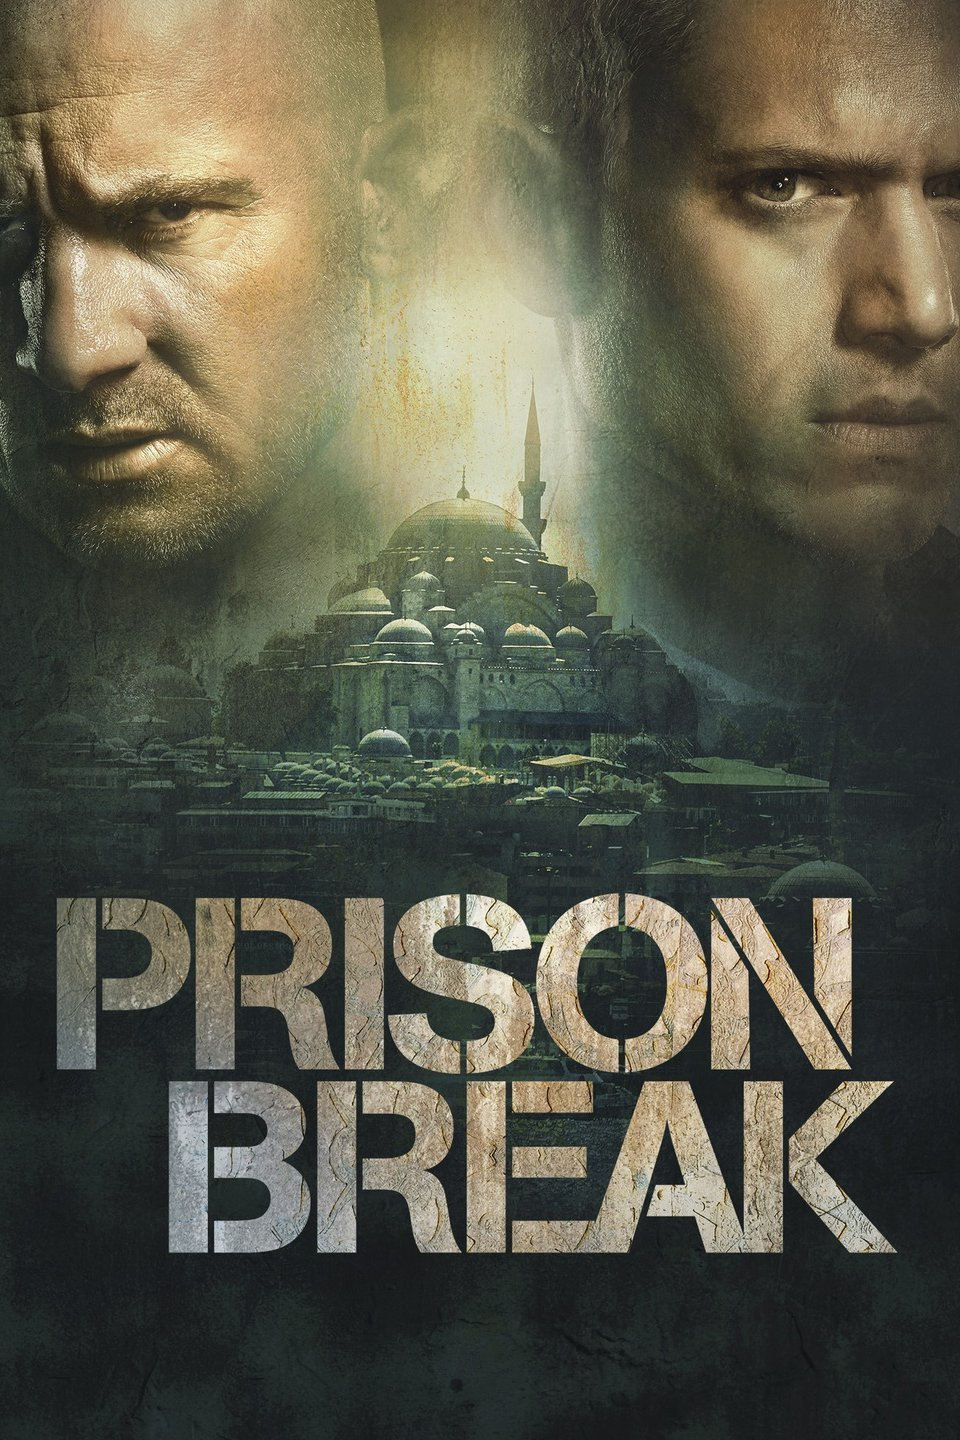 Prison Break Season 5 Episode 5 Download 480p WEB-DL 150MB